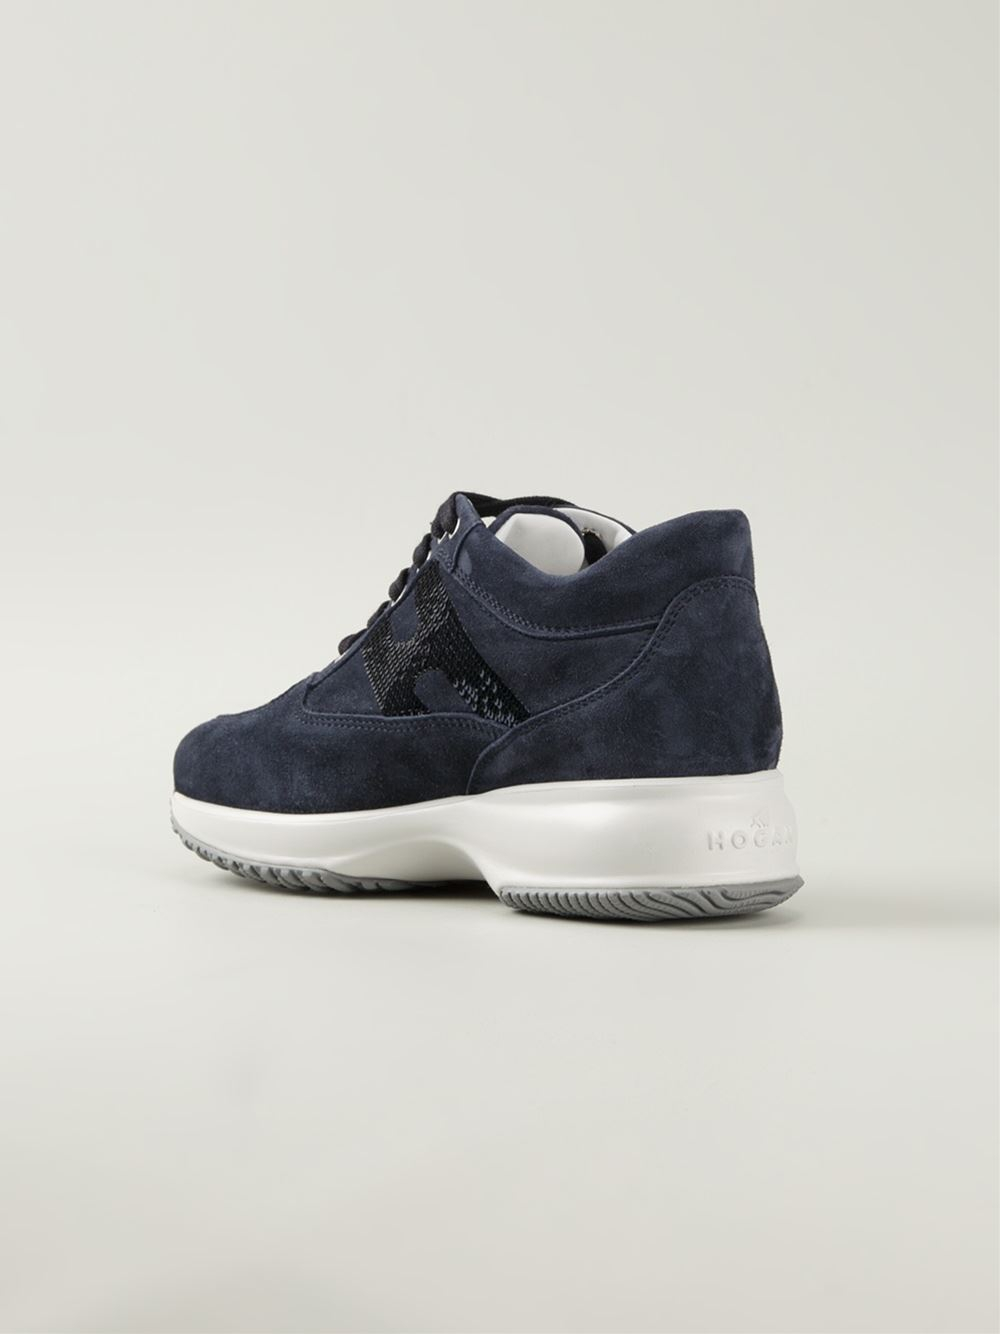 Alta qualit Hogan Interactive Sneakers Suede vendita